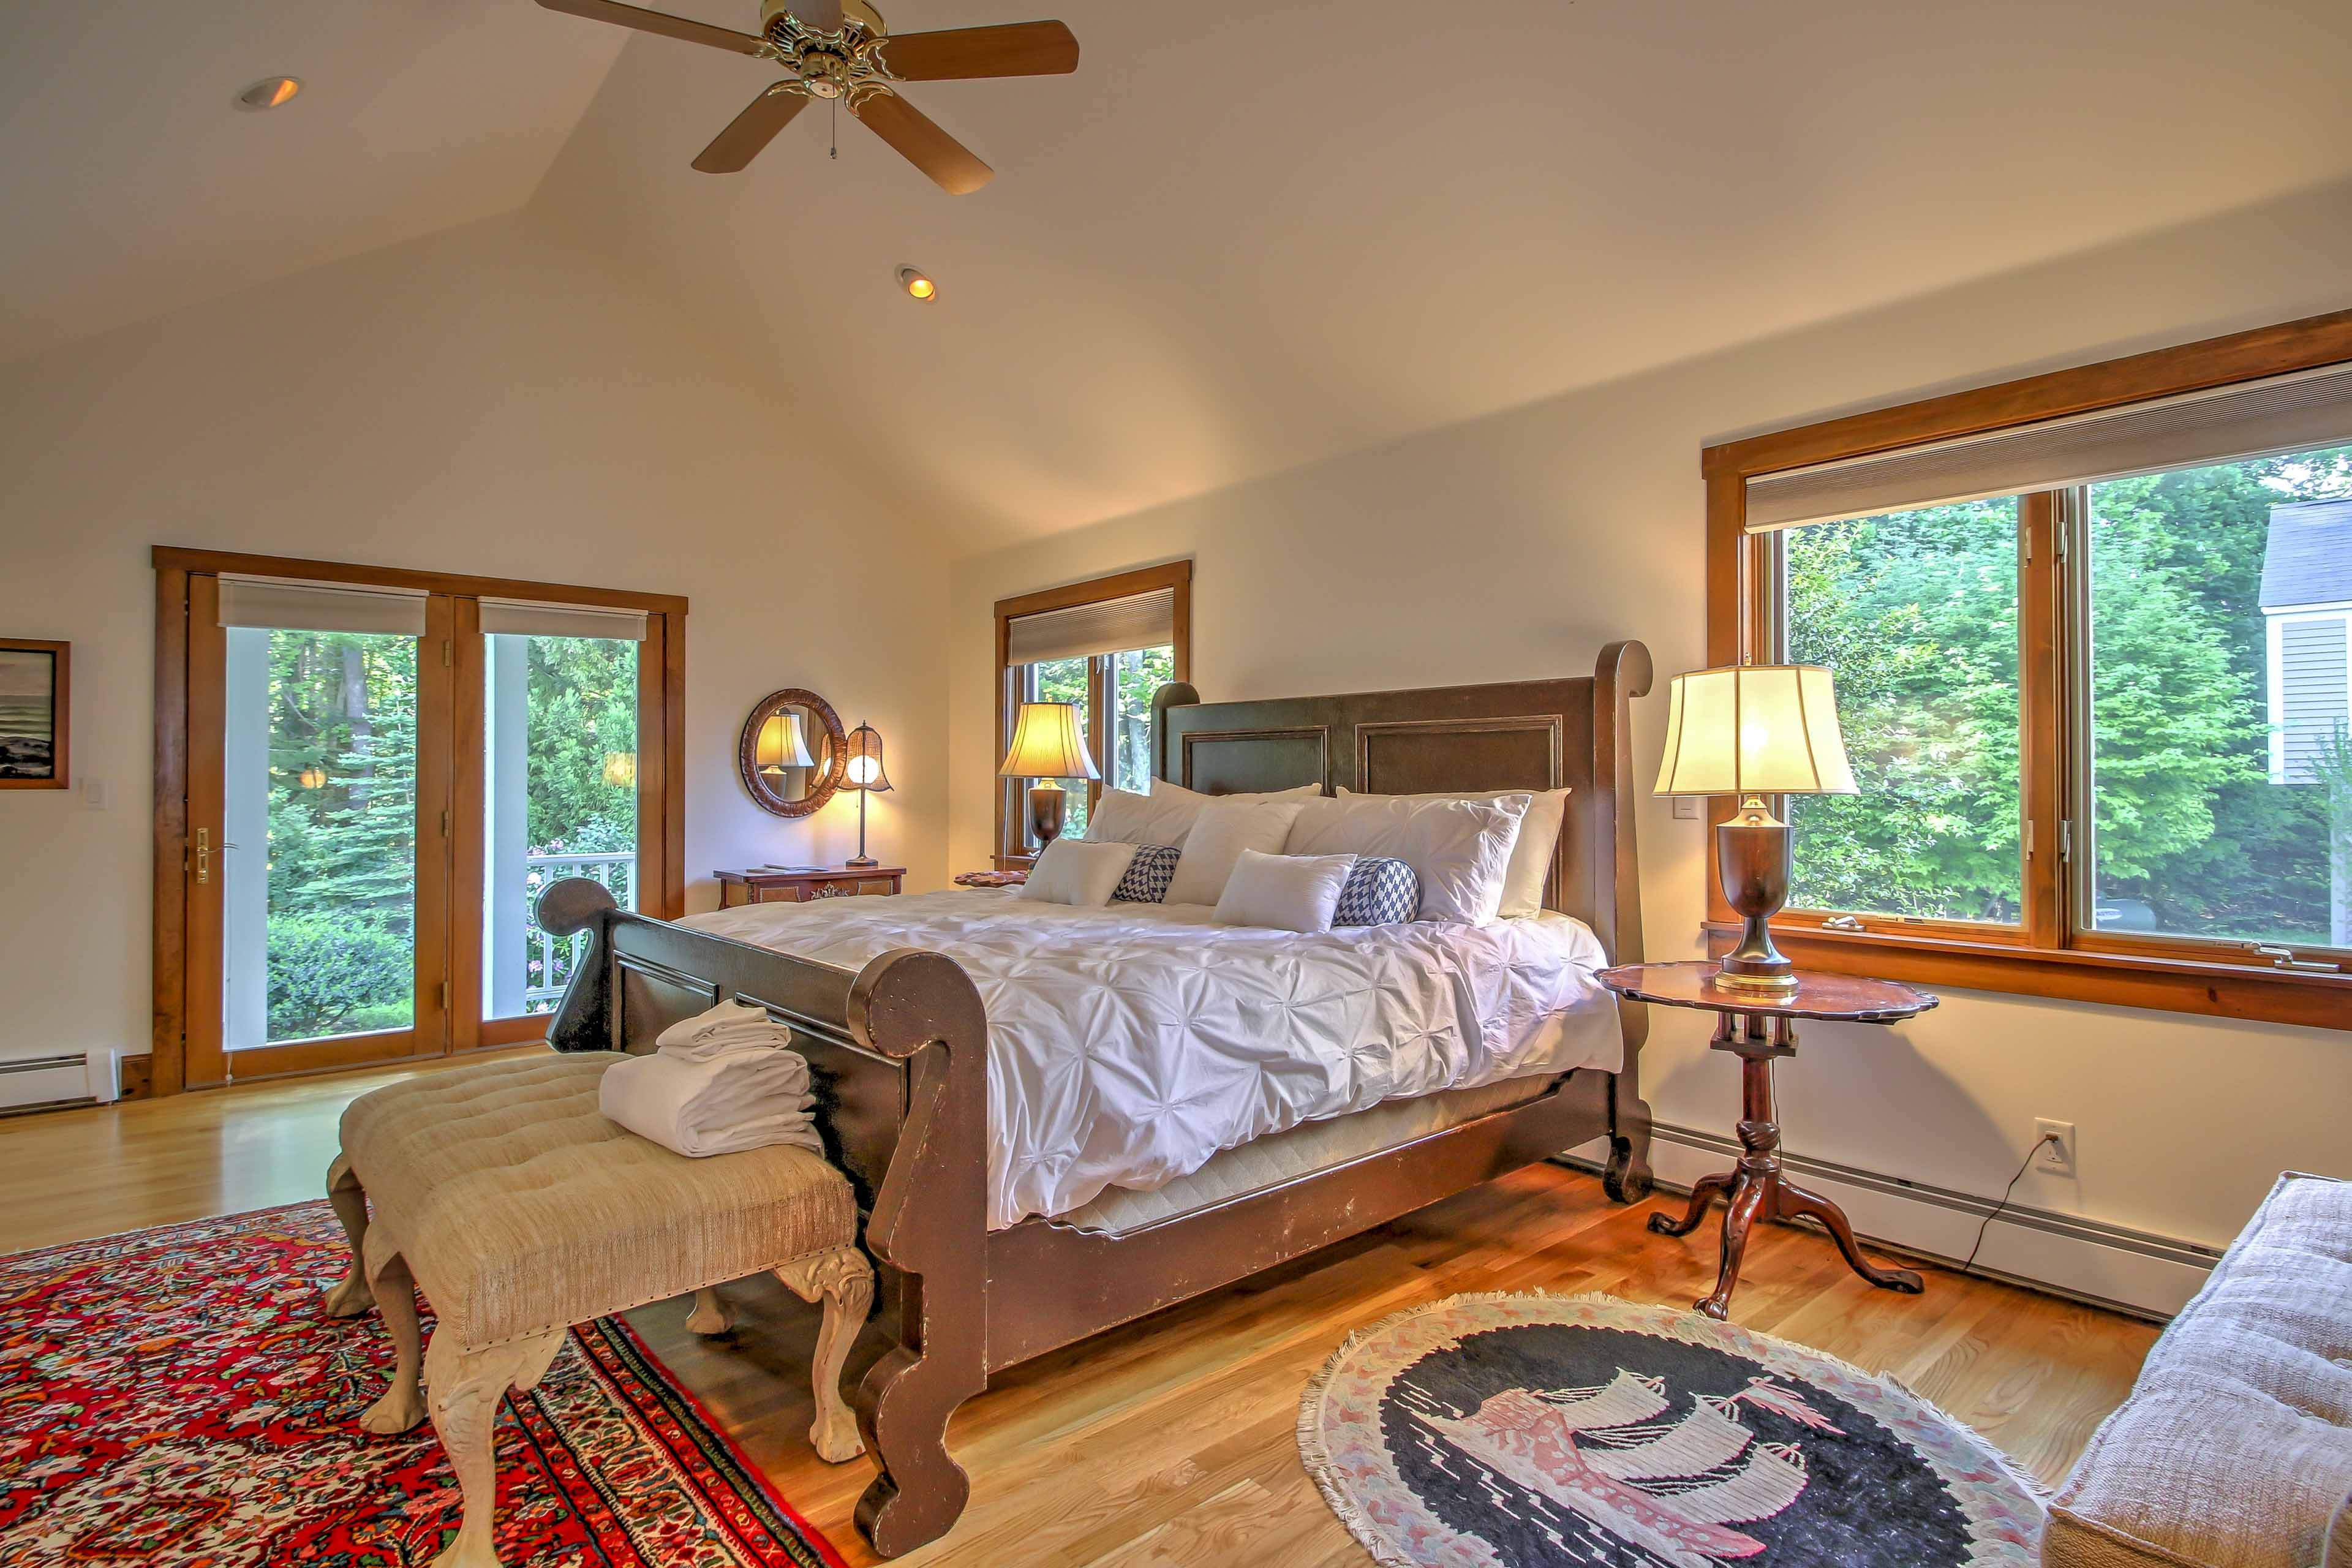 The master bedroom features a king bed and a spacious en suite bathroom.